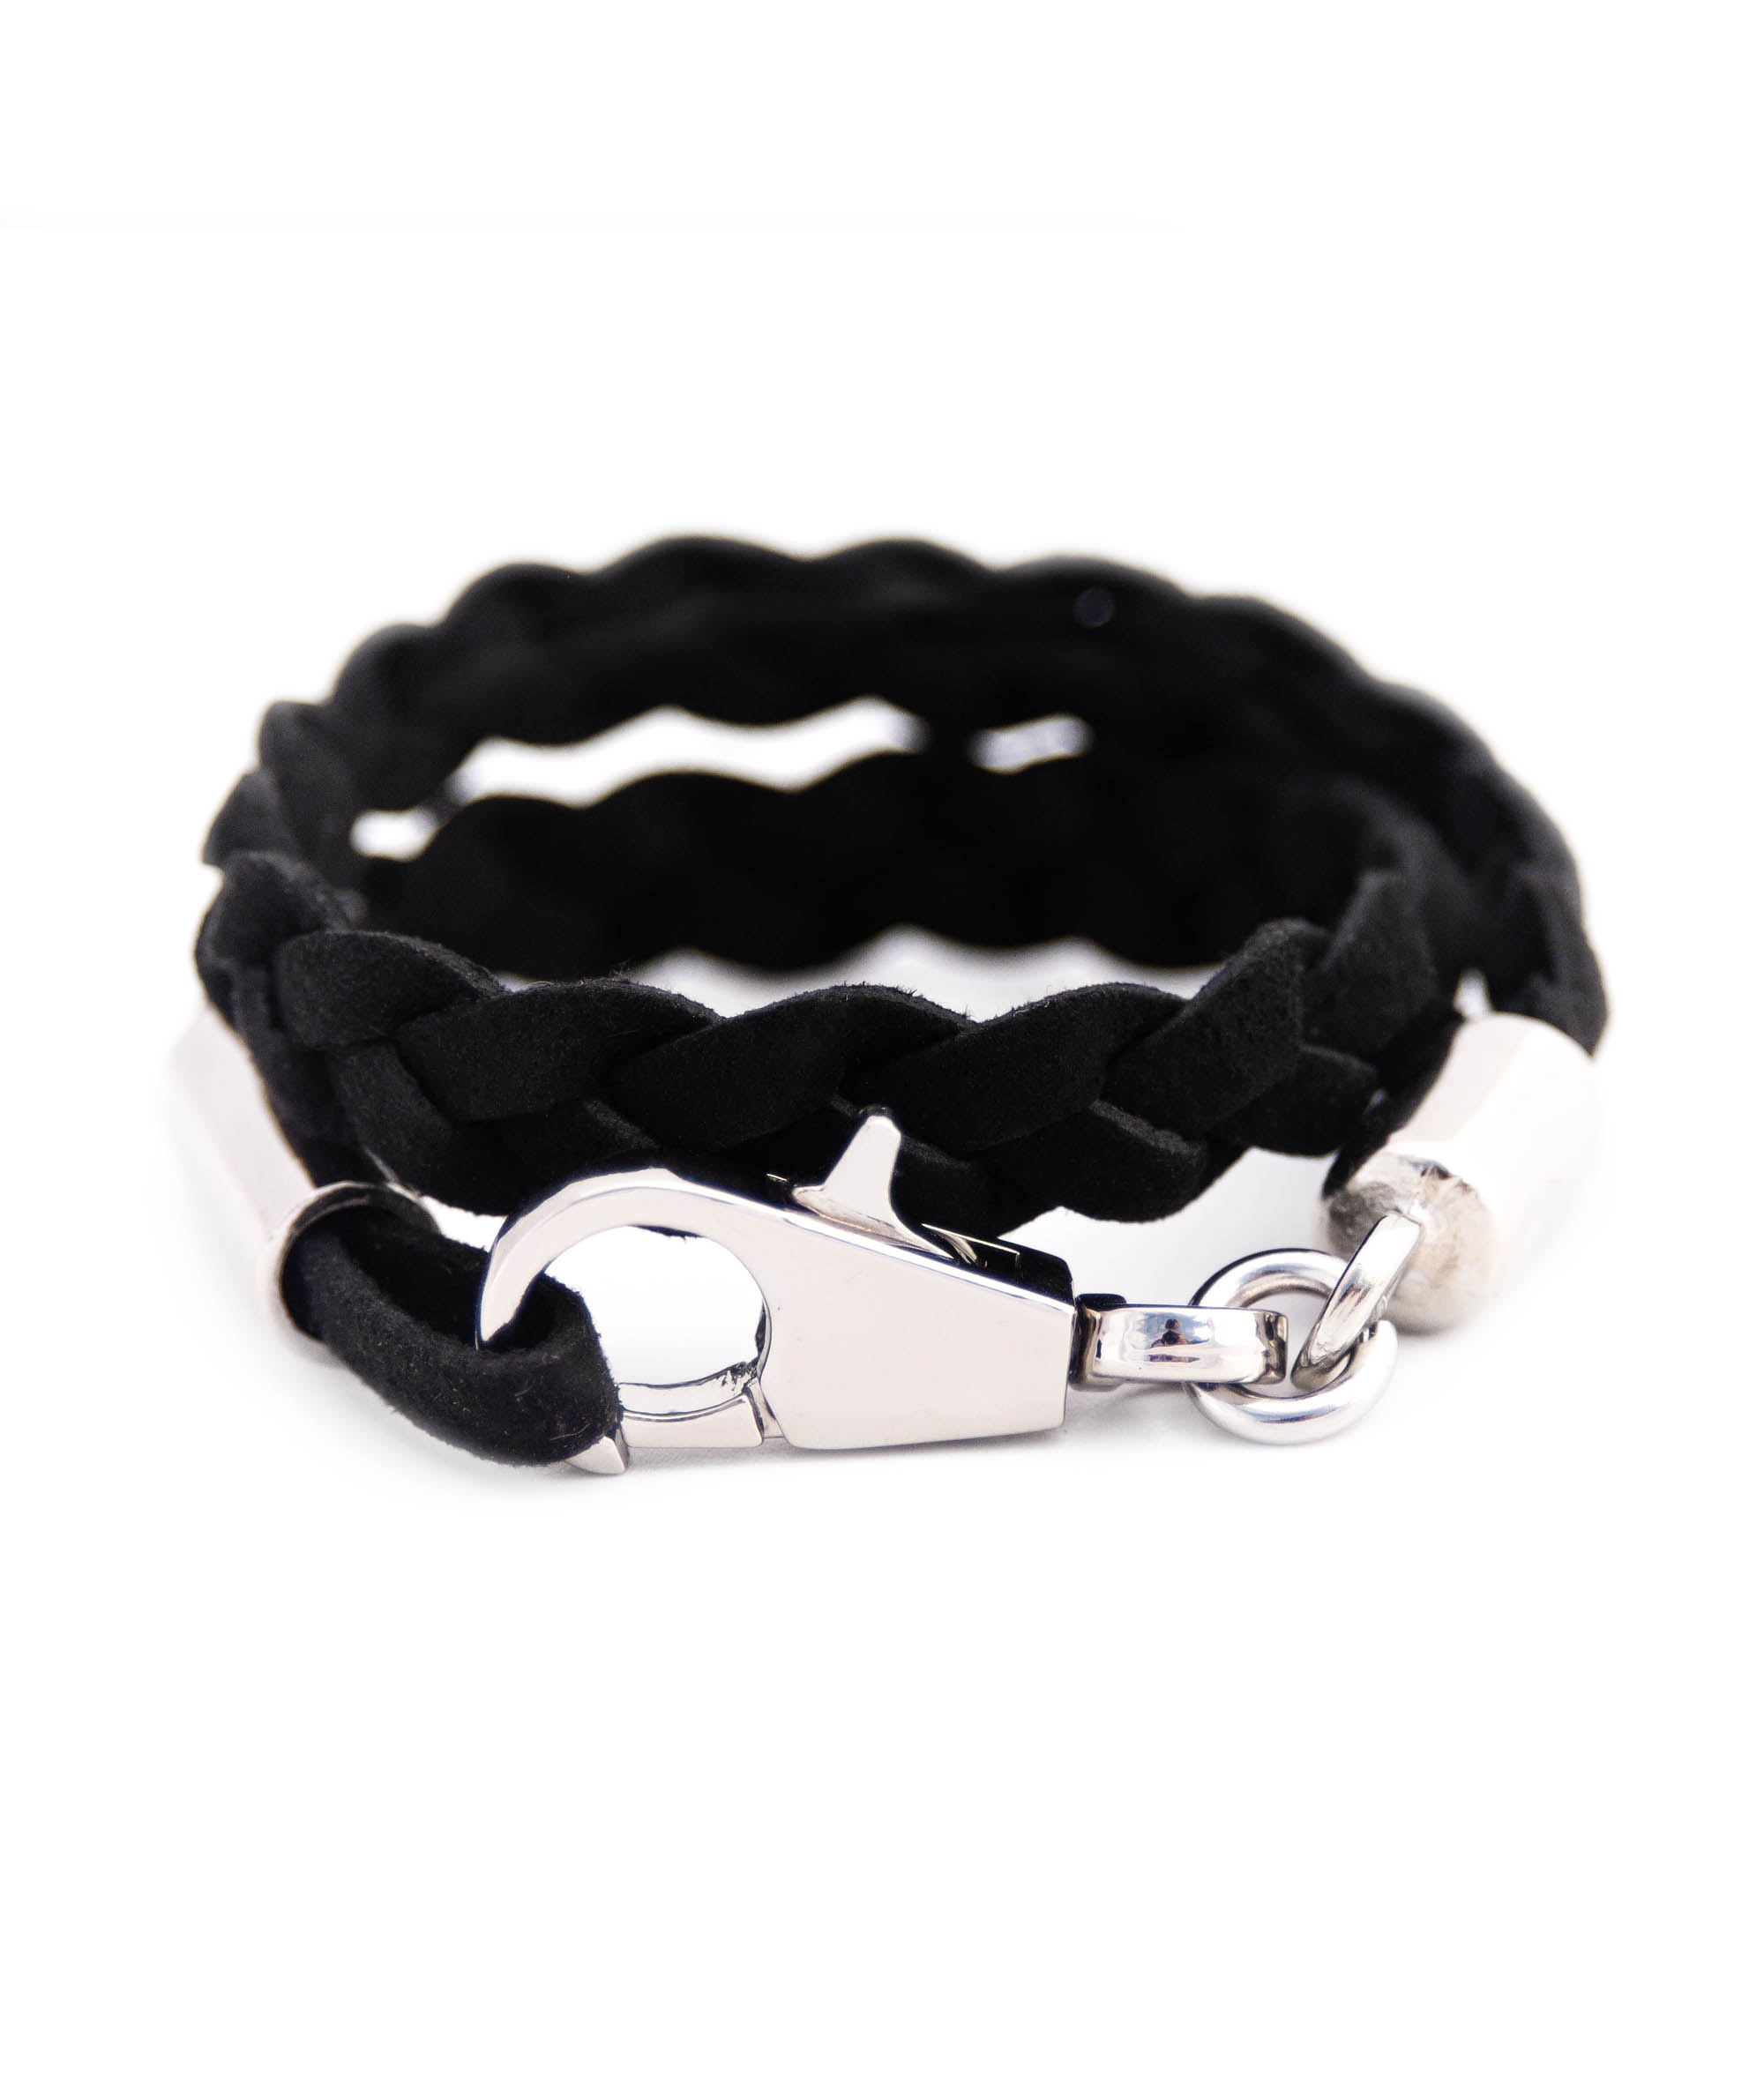 men tw black cut bracelet mens kaystore en zm ct round to kay hover mv steel s diamond zoom stainless